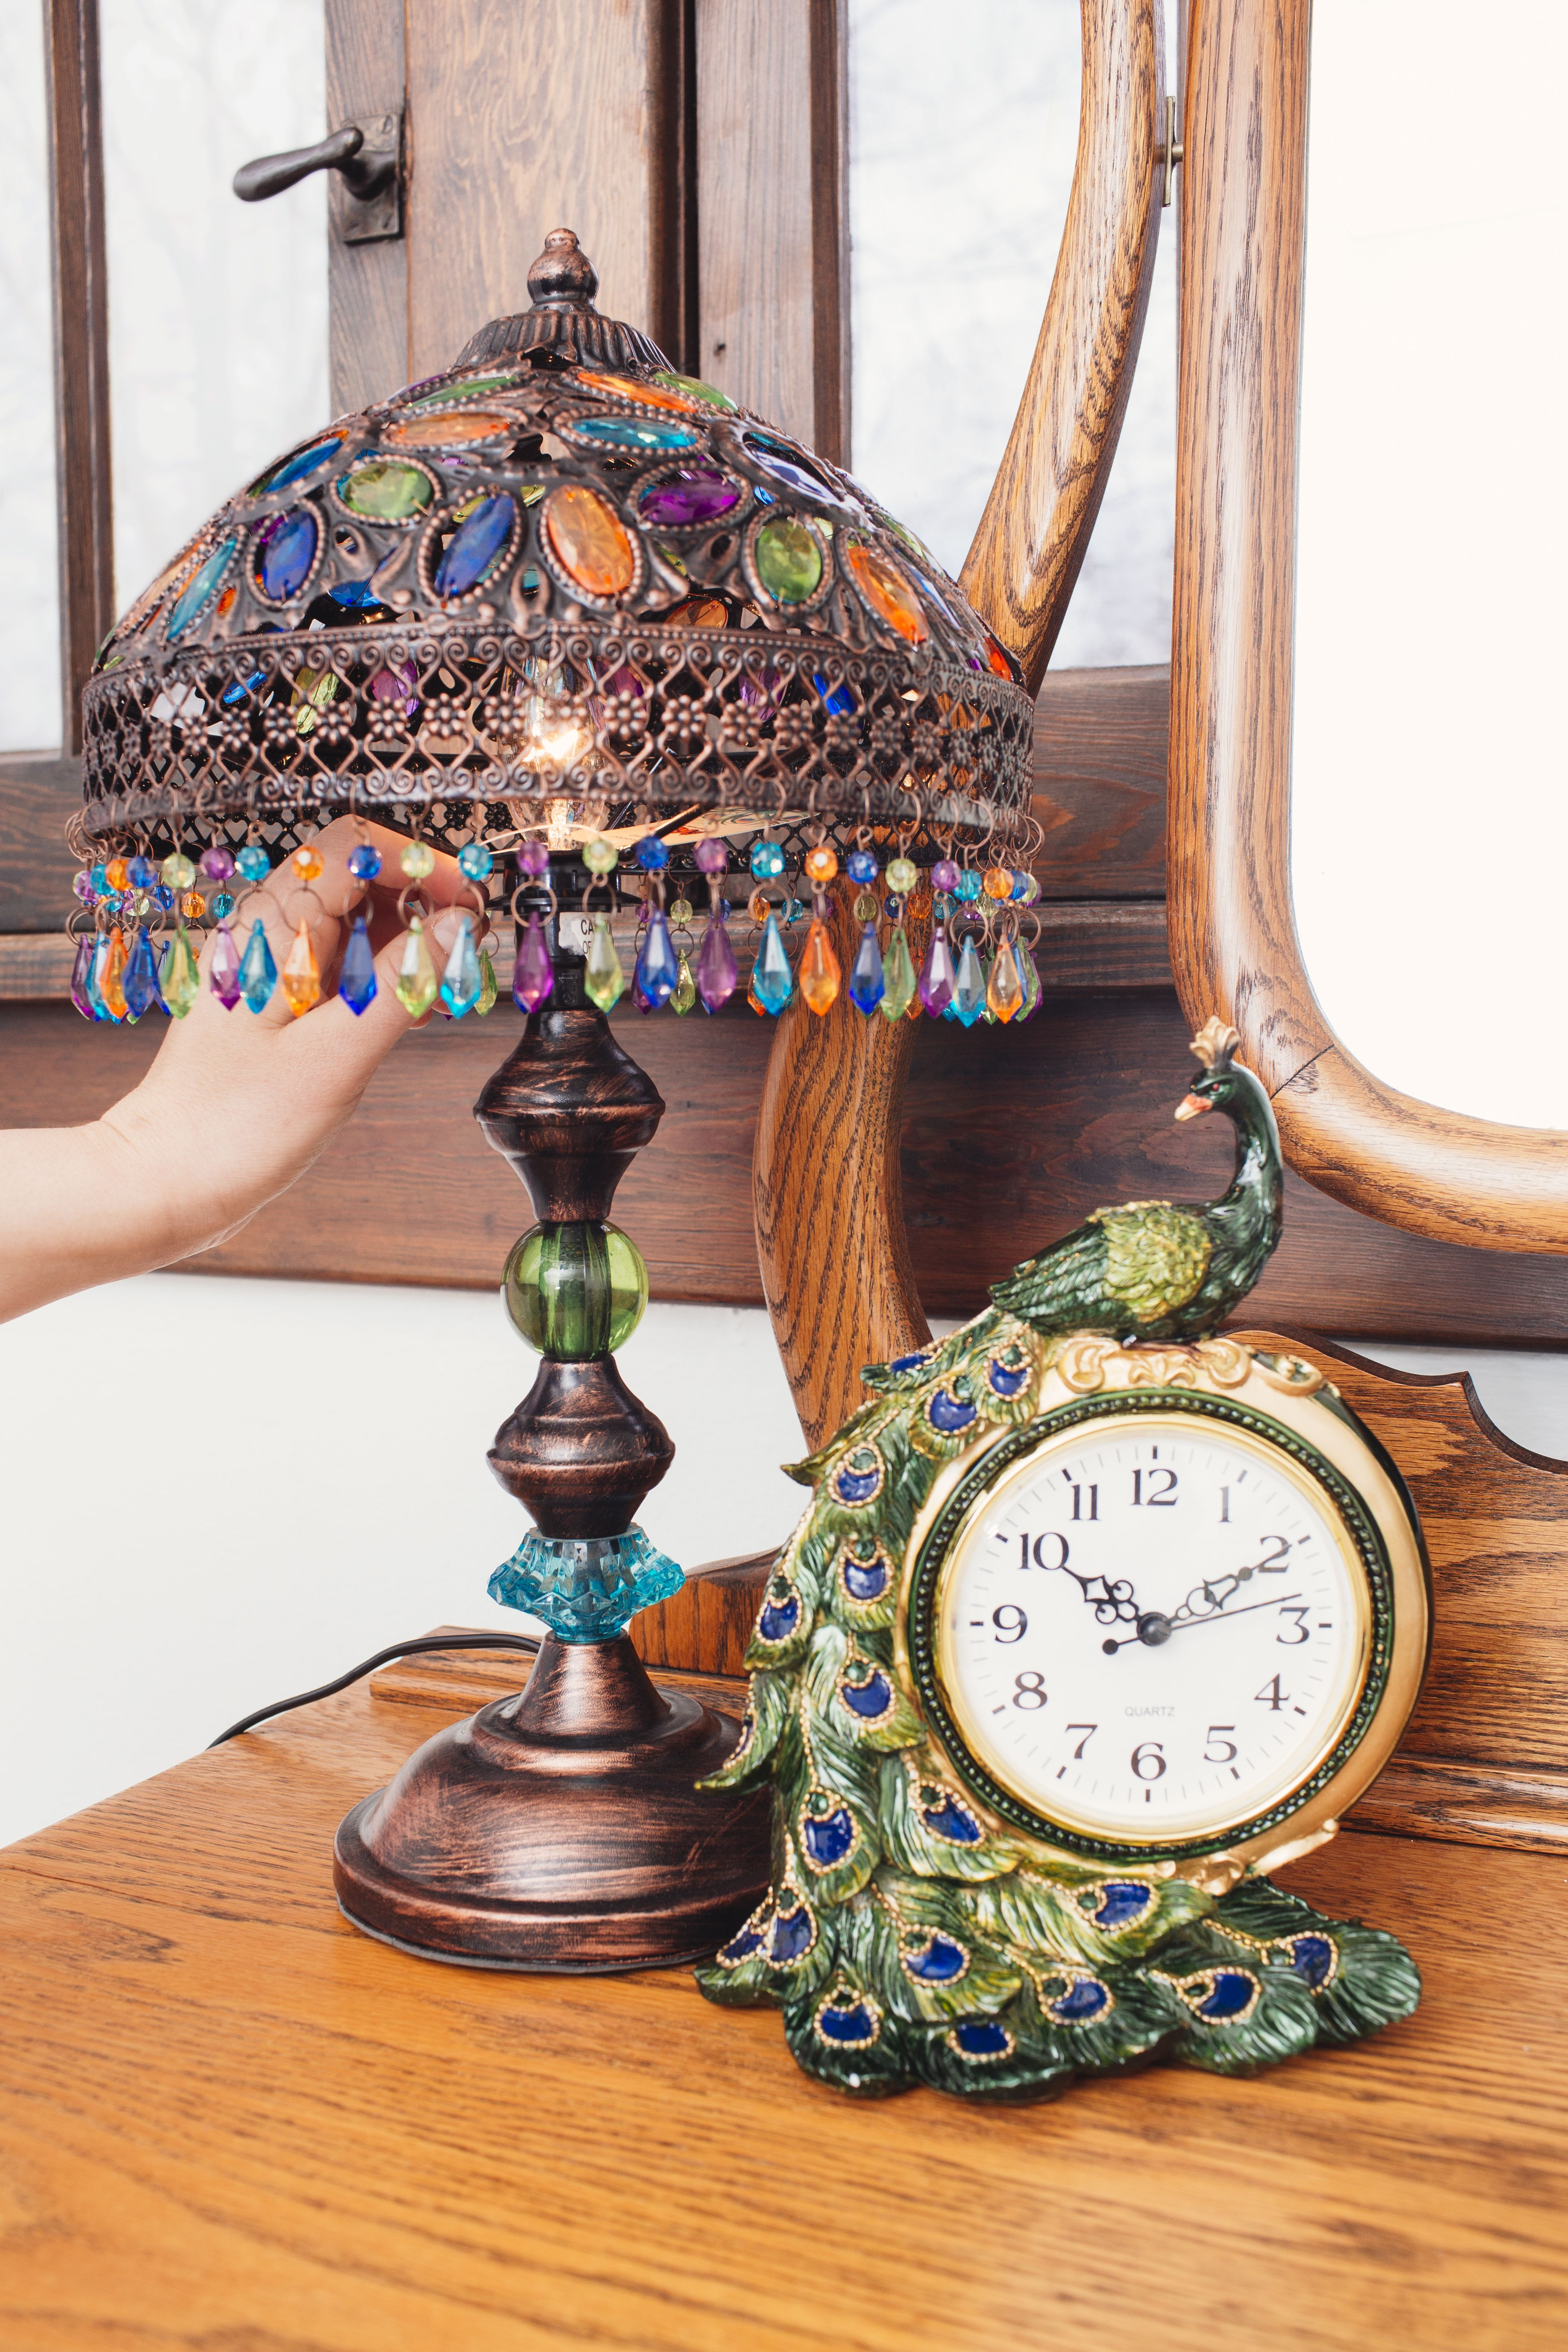 These Beautiful Pieces Will Look Timeless In Your Home Decor Add The Dazzling Colors Of The Peacock To Your Favorite Rooms Wit Home Decor Decor Cracker Barrel